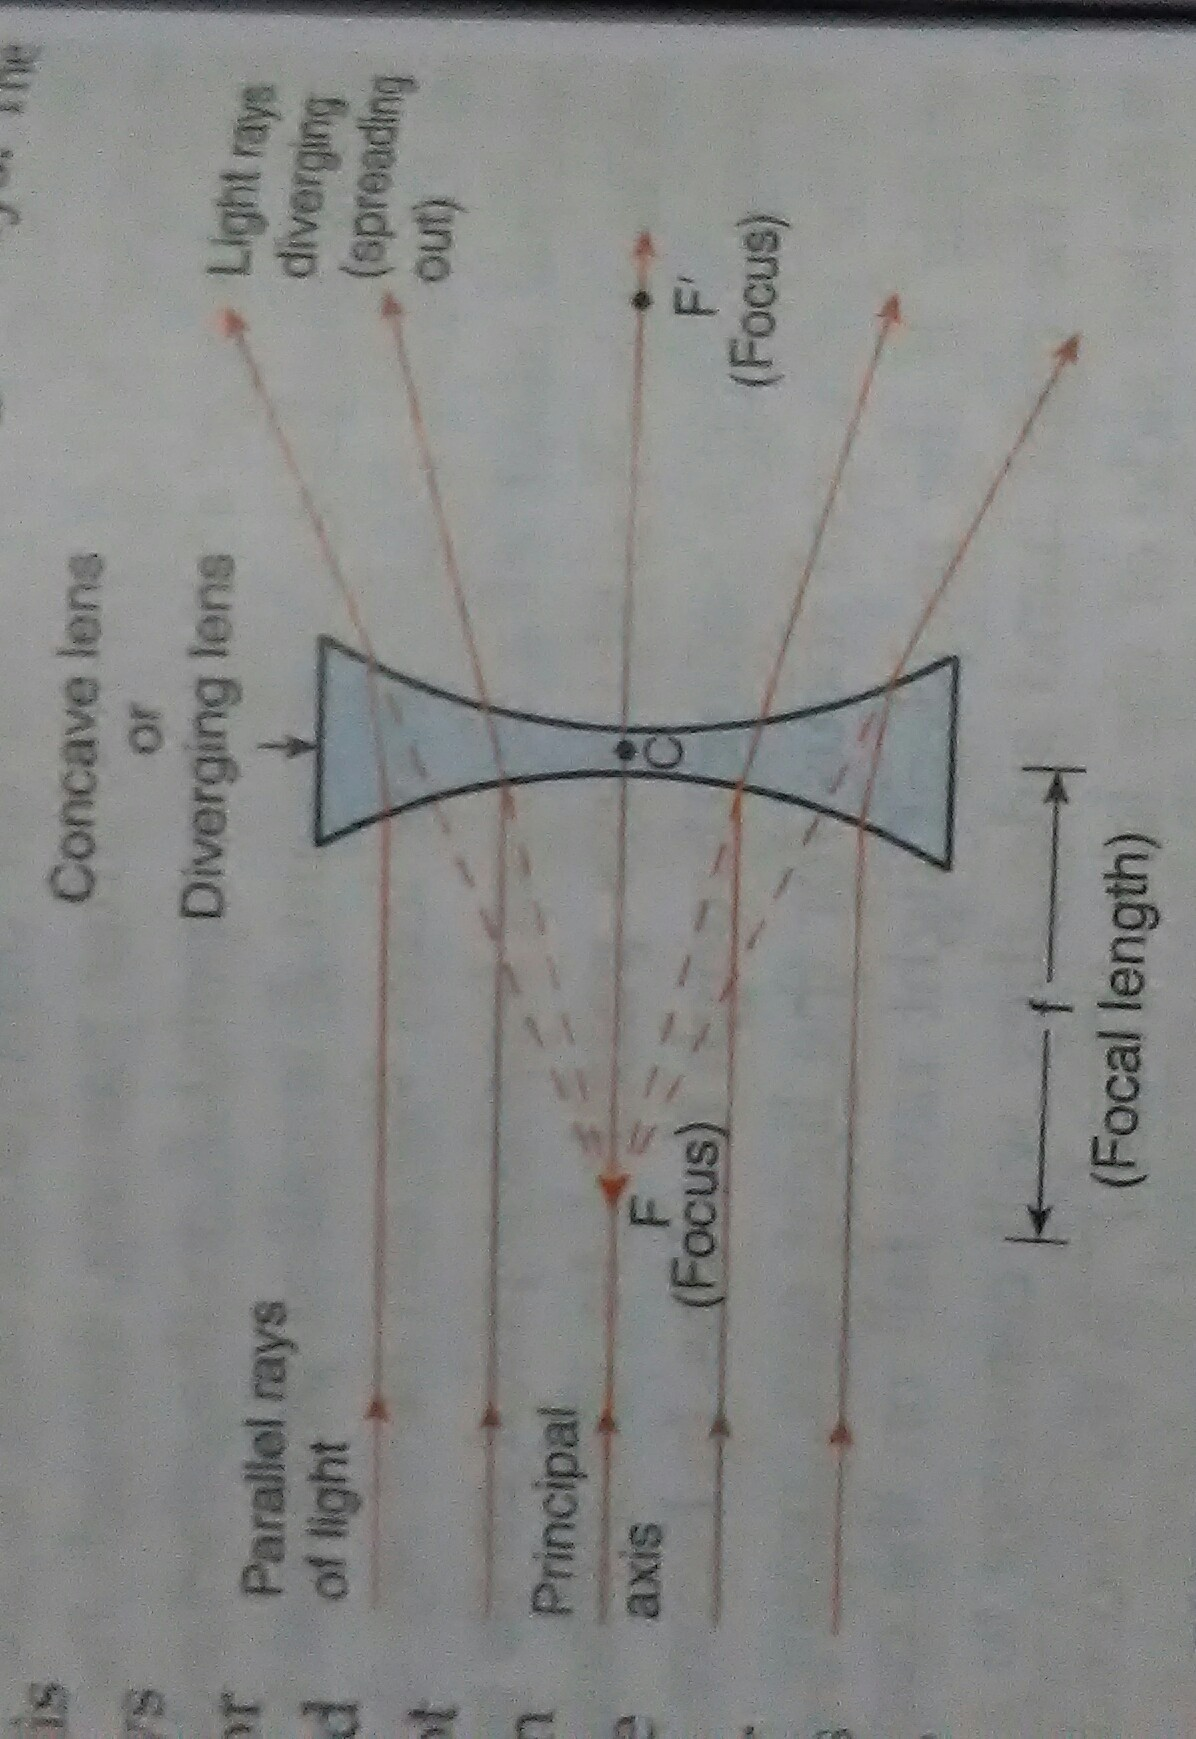 With The Help Of Ray Diagram Explain Why A Concave Lens